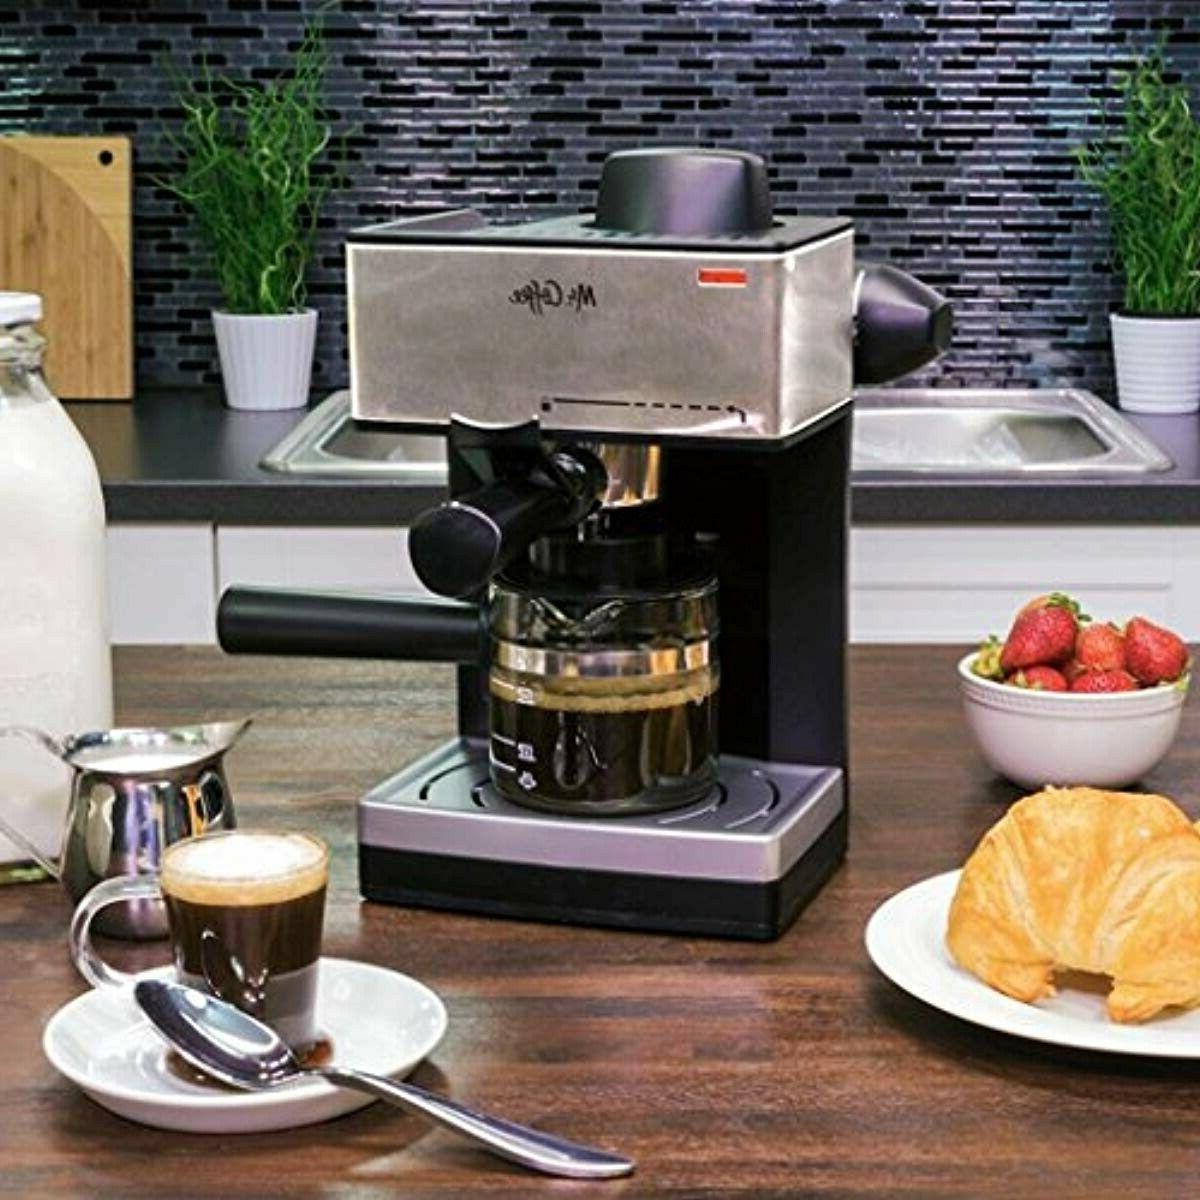 Home Expresso Coffee Maker Steam NEW